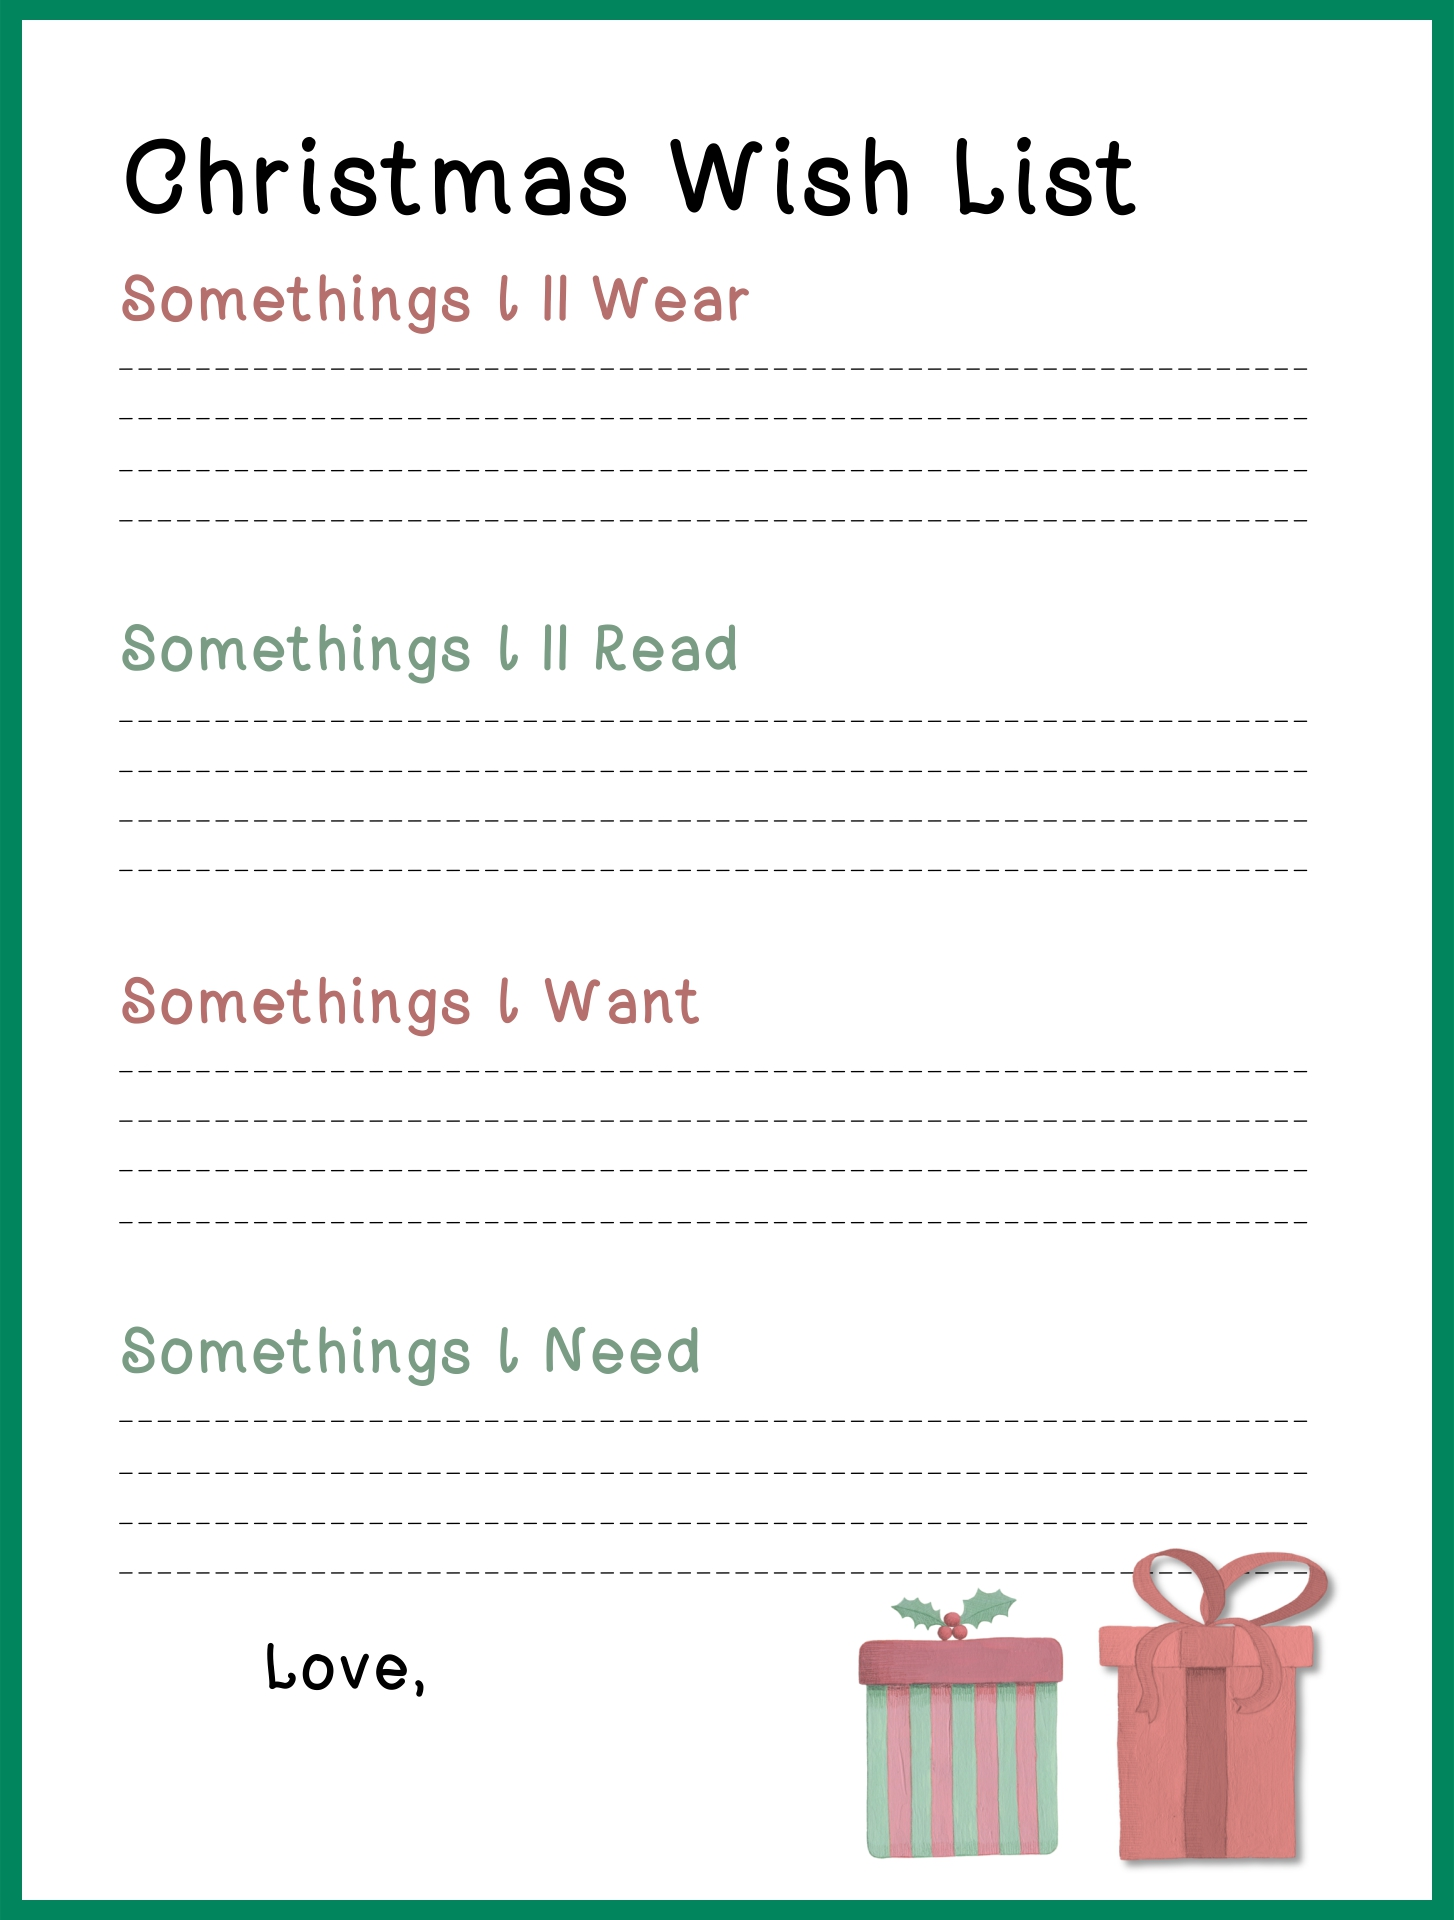 Free Printable Christmas Wish List Template Letters to SantaDoc – Free Printable Christmas Wish List Template